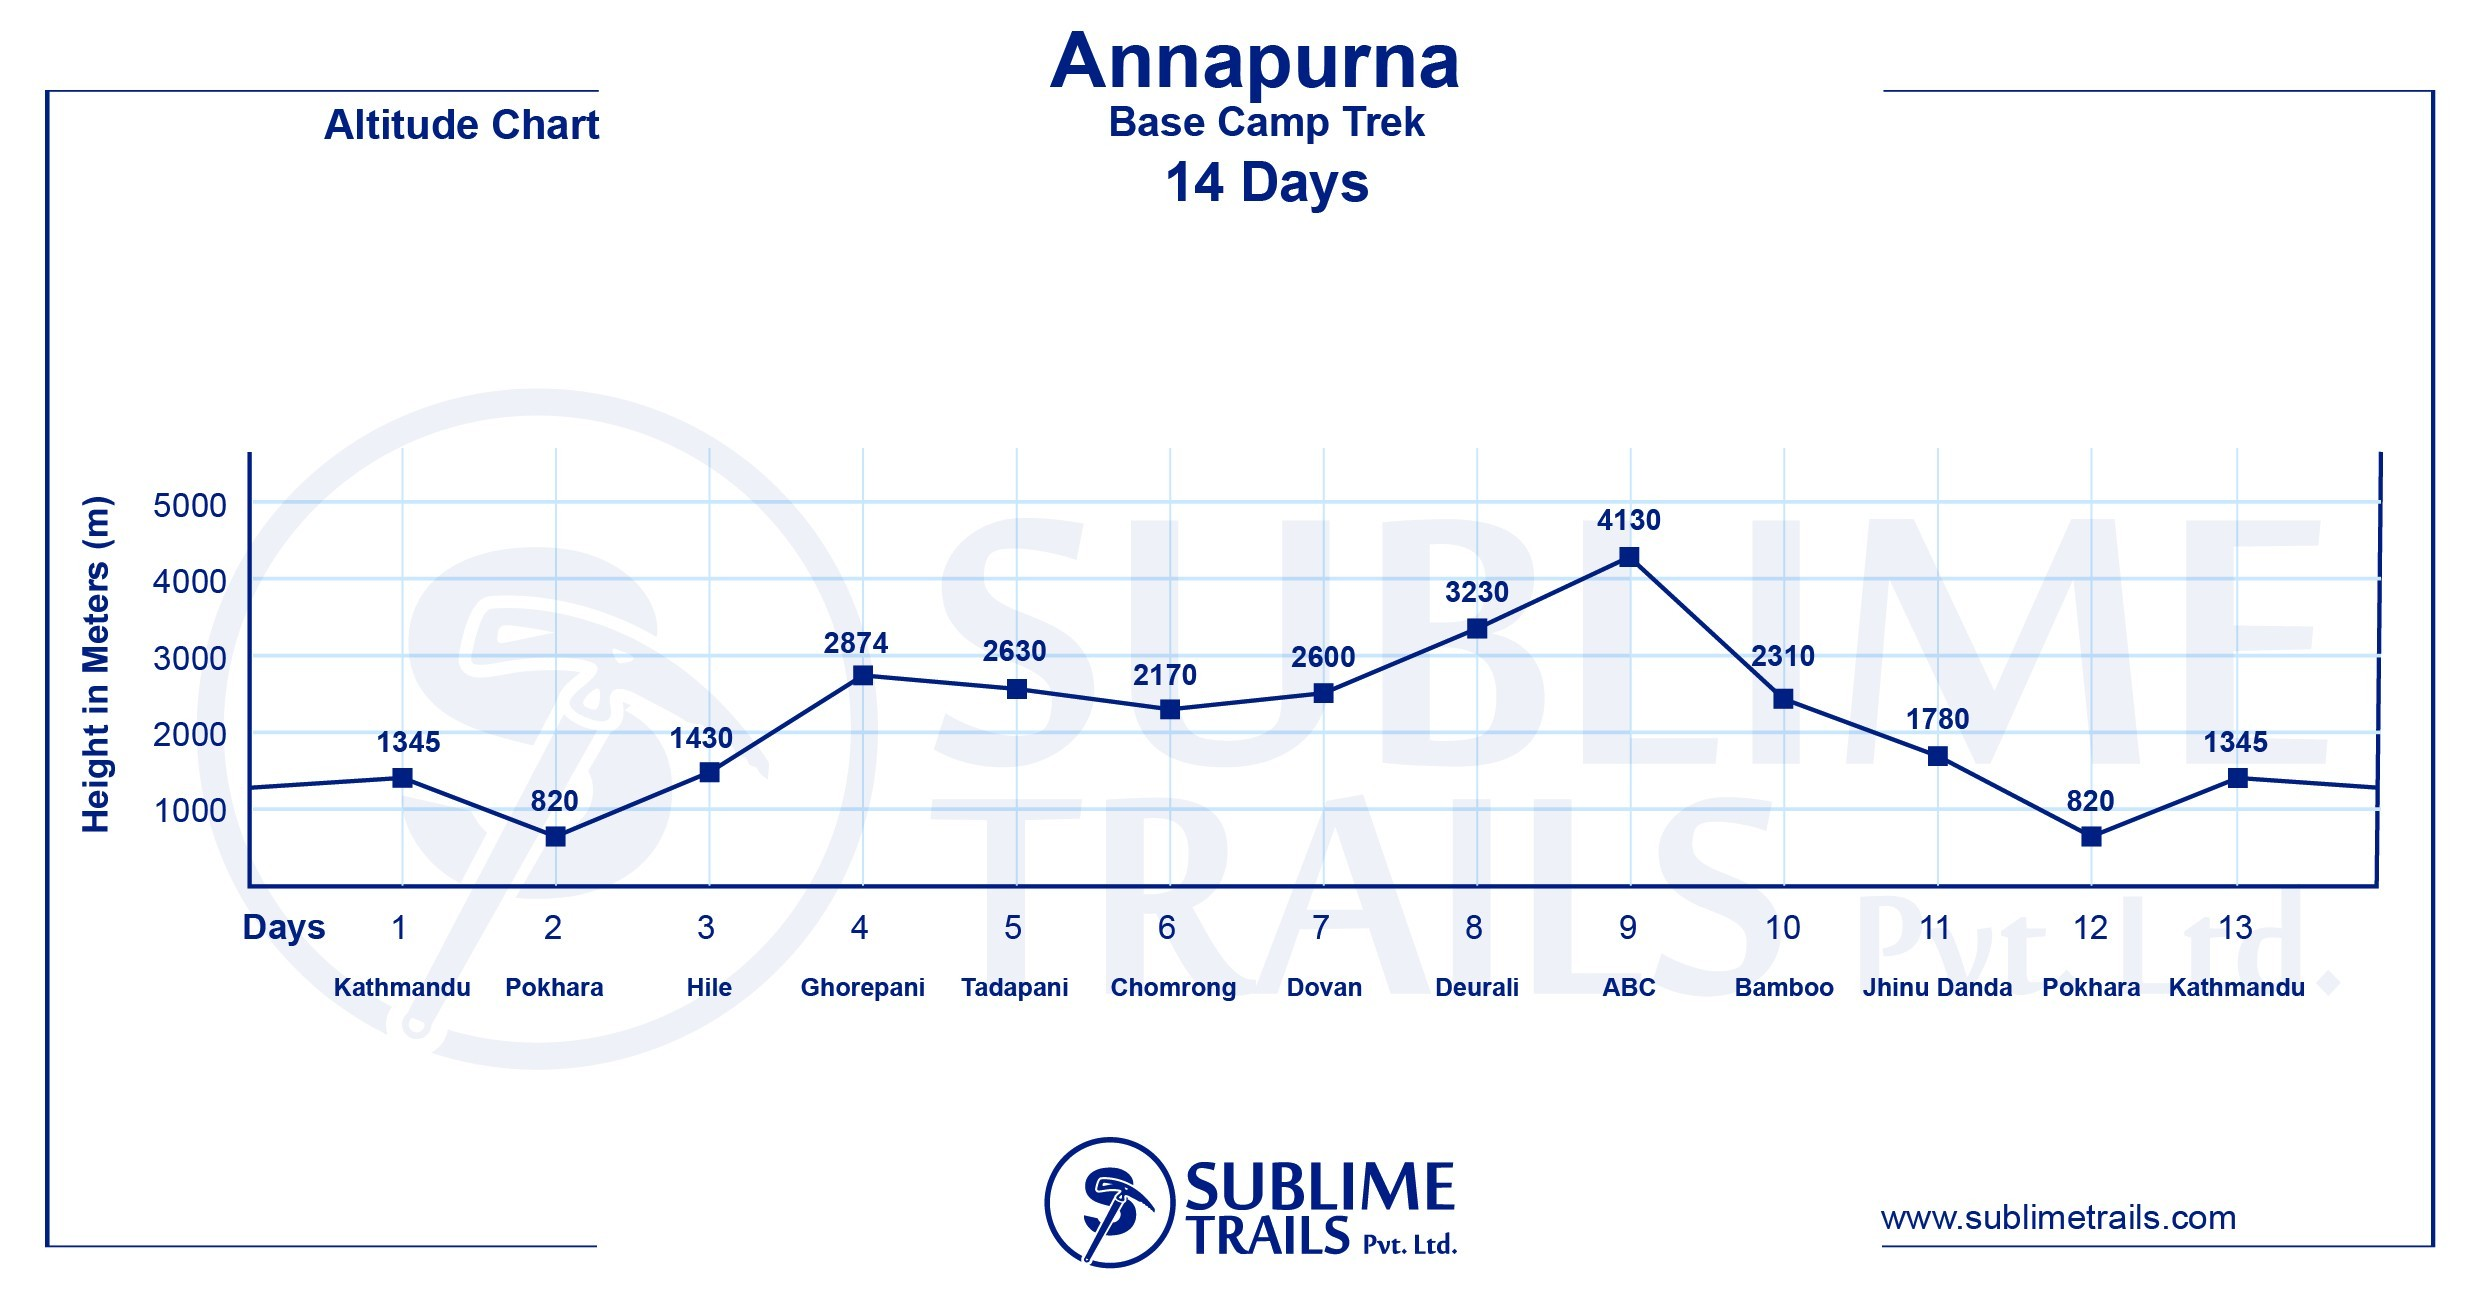 Annapurna Base Camp Trek altitude map